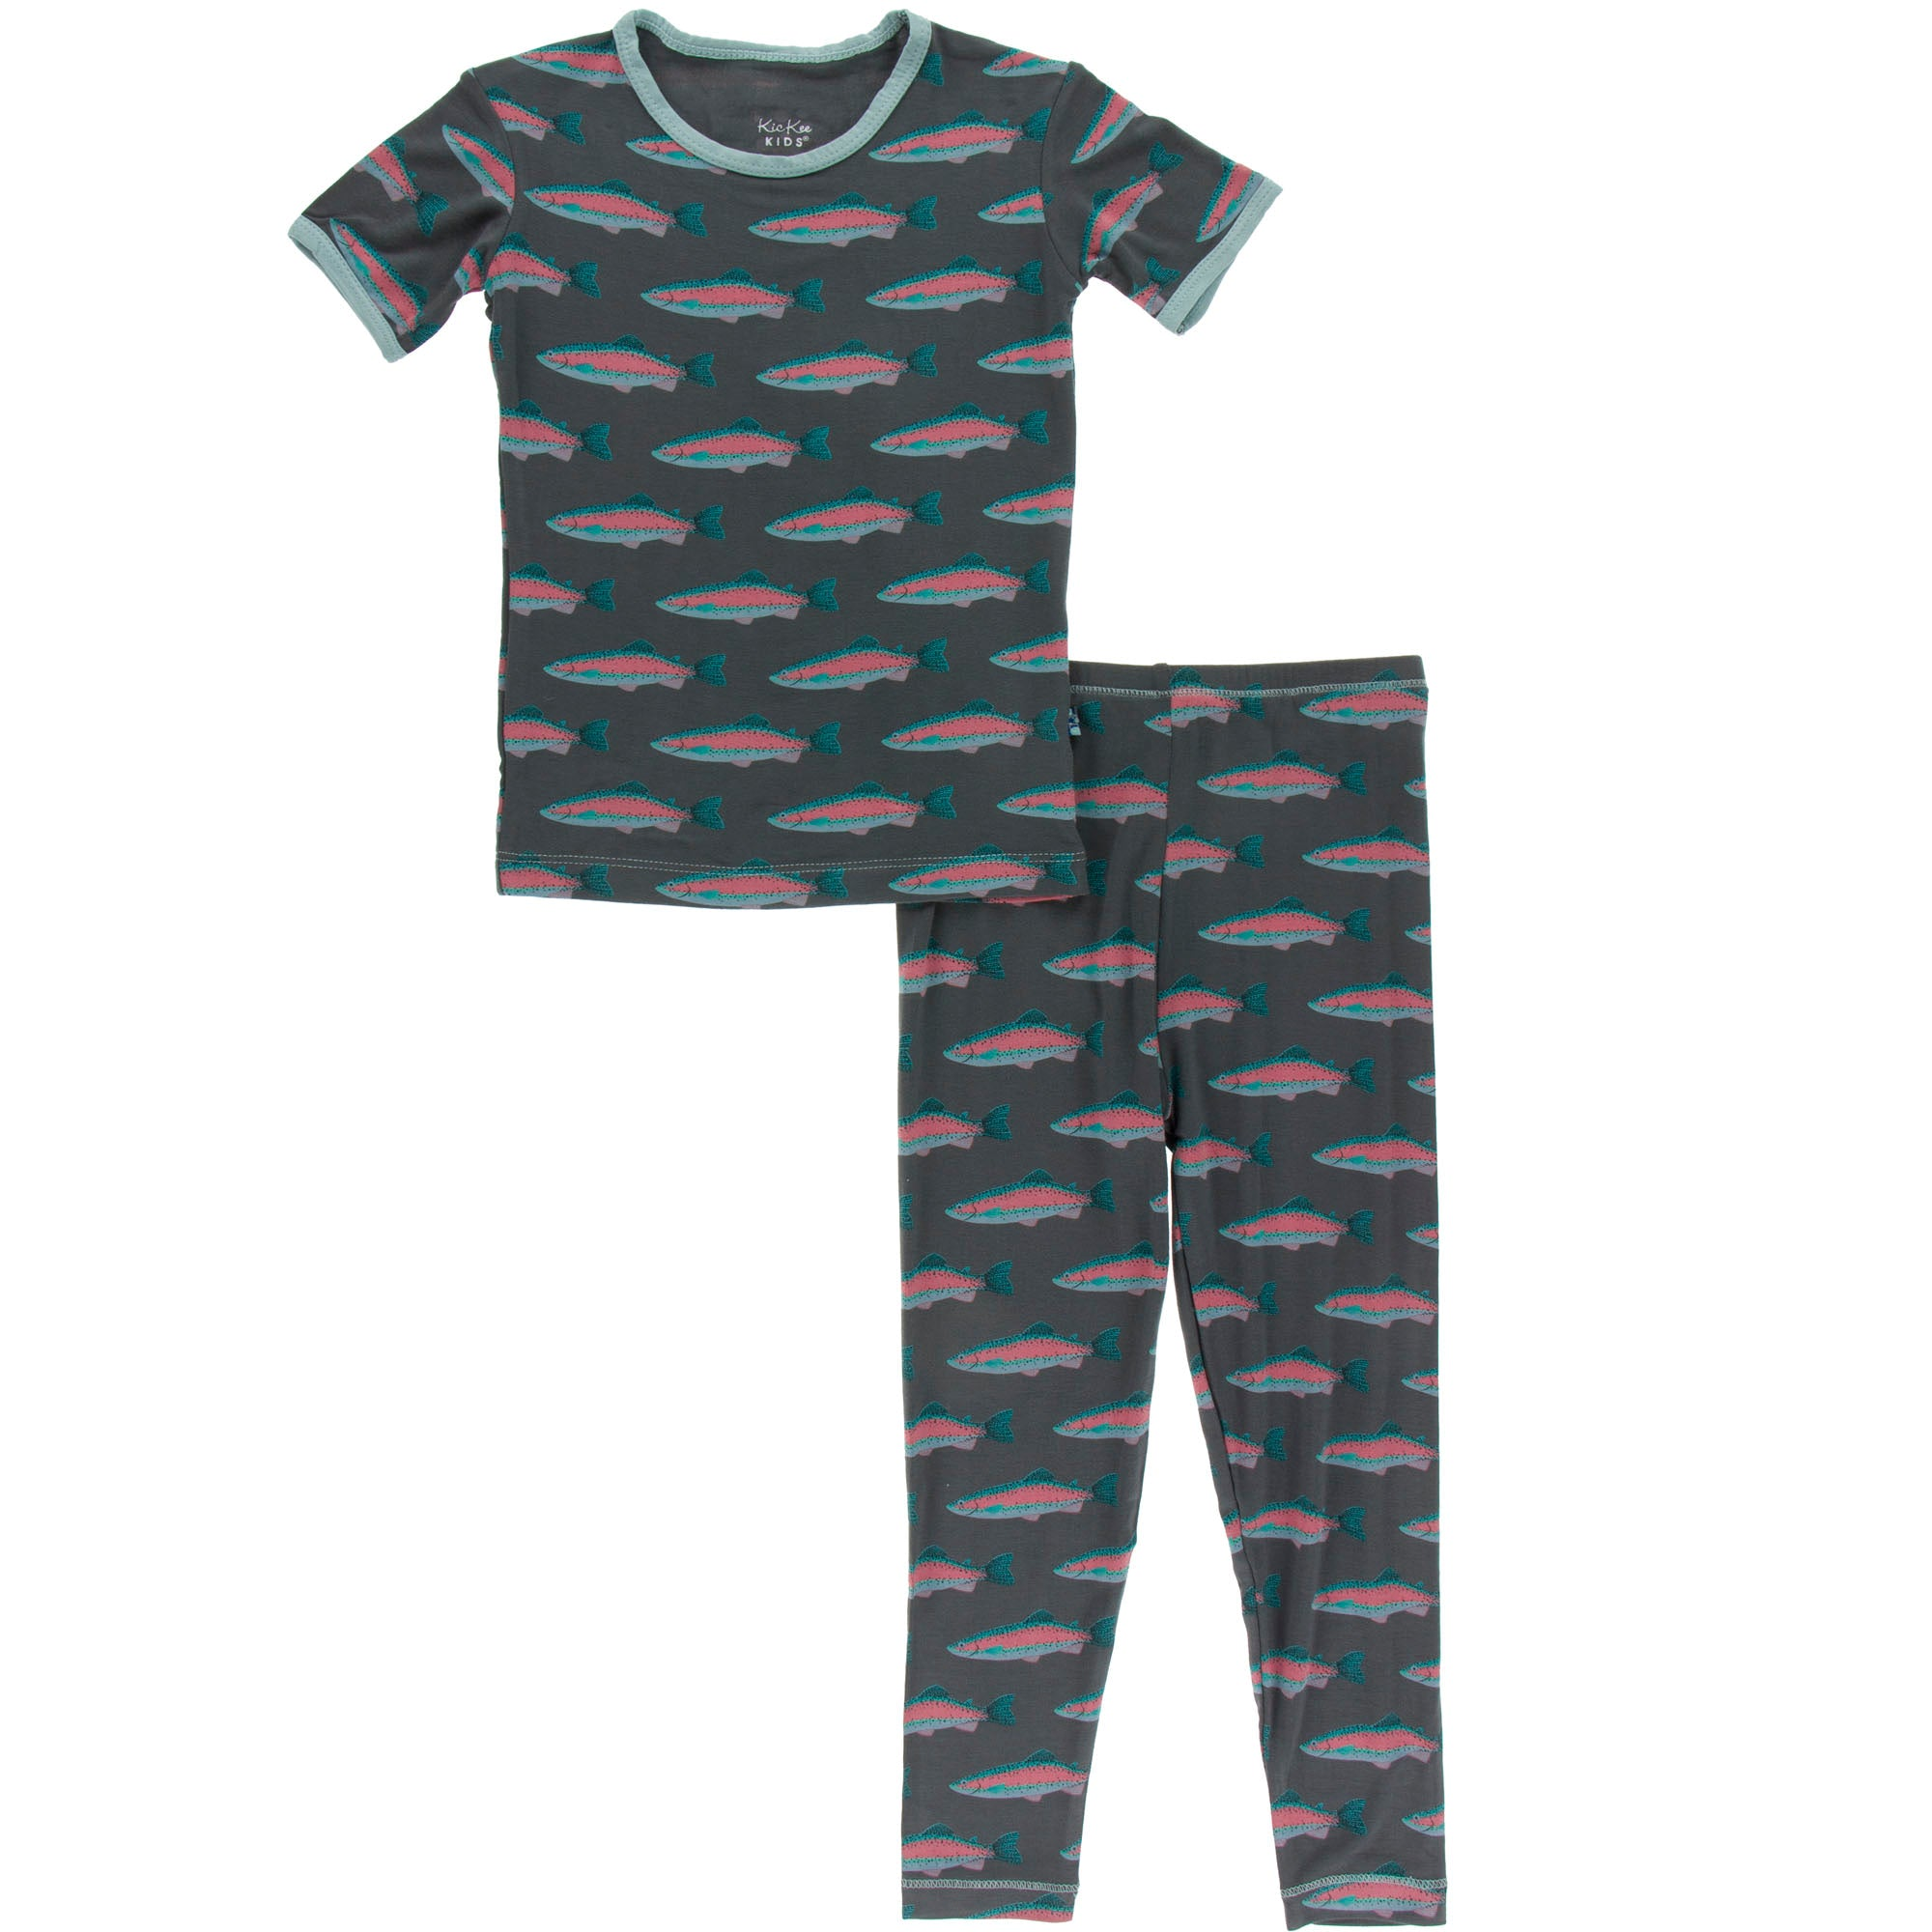 KicKee Pants Short Sleeve Pajama Set - Stone Rainbow Trout